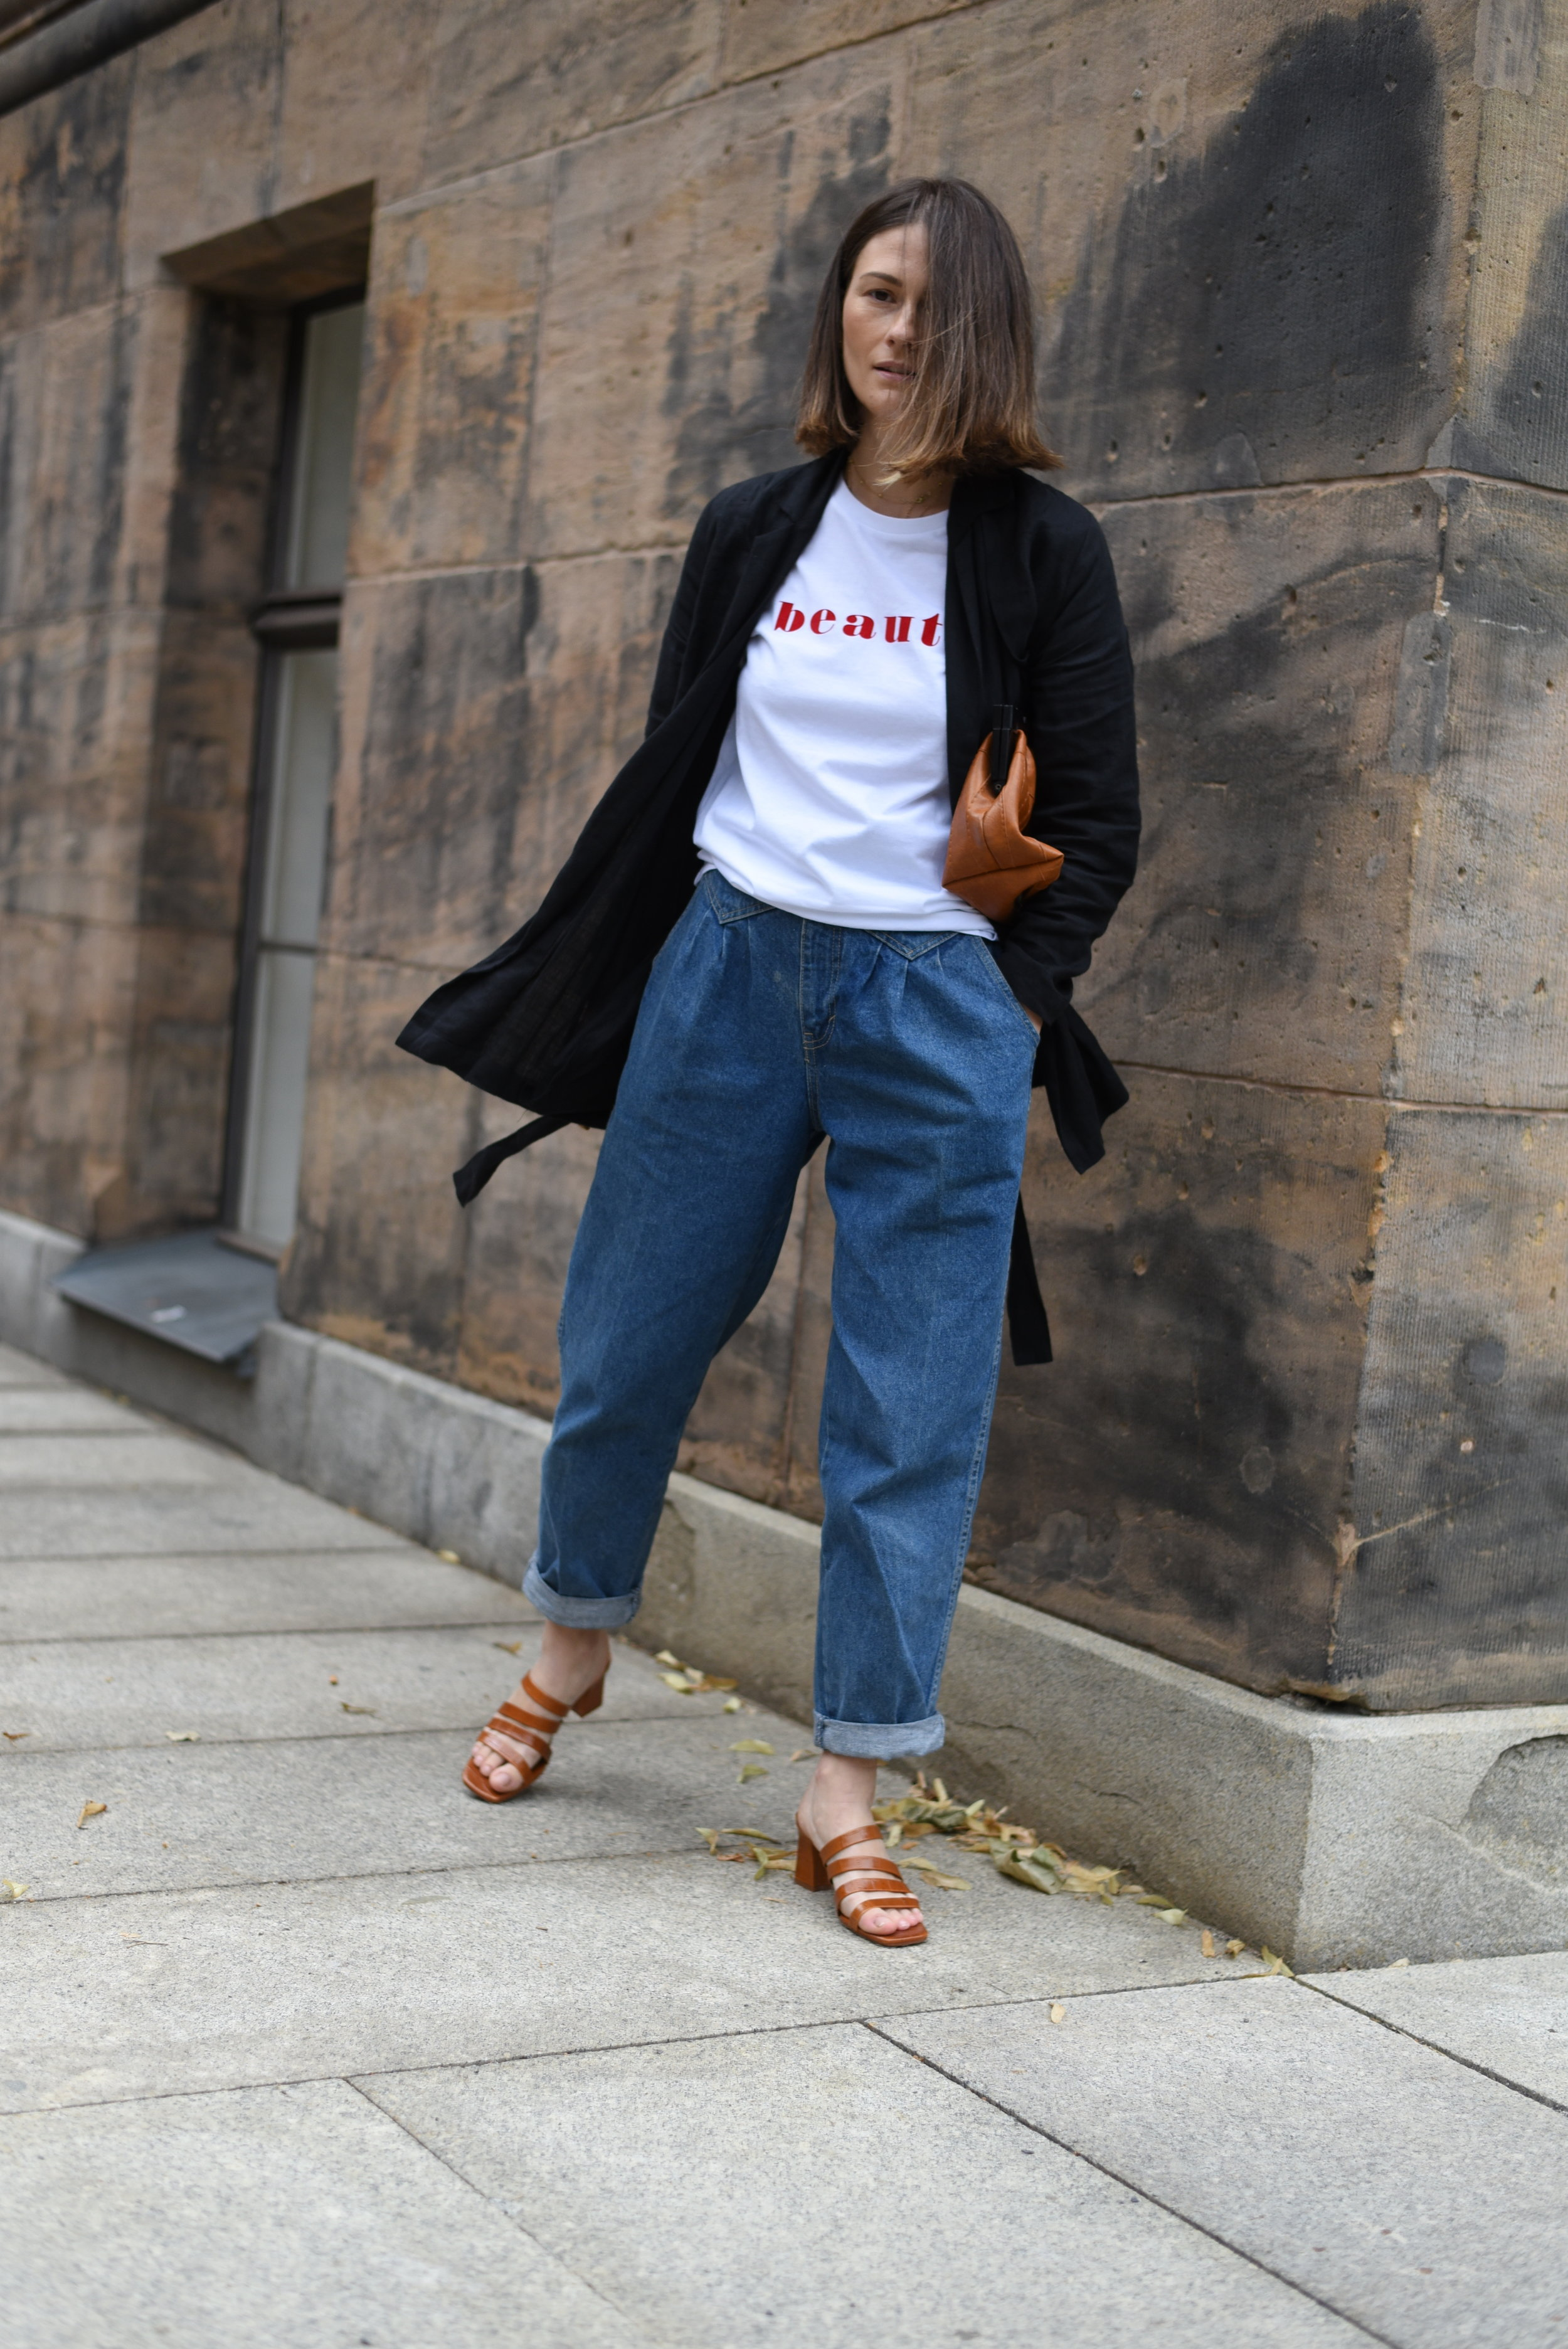 C'EST BEAUTÉ - How to make a simple casual look not simple…